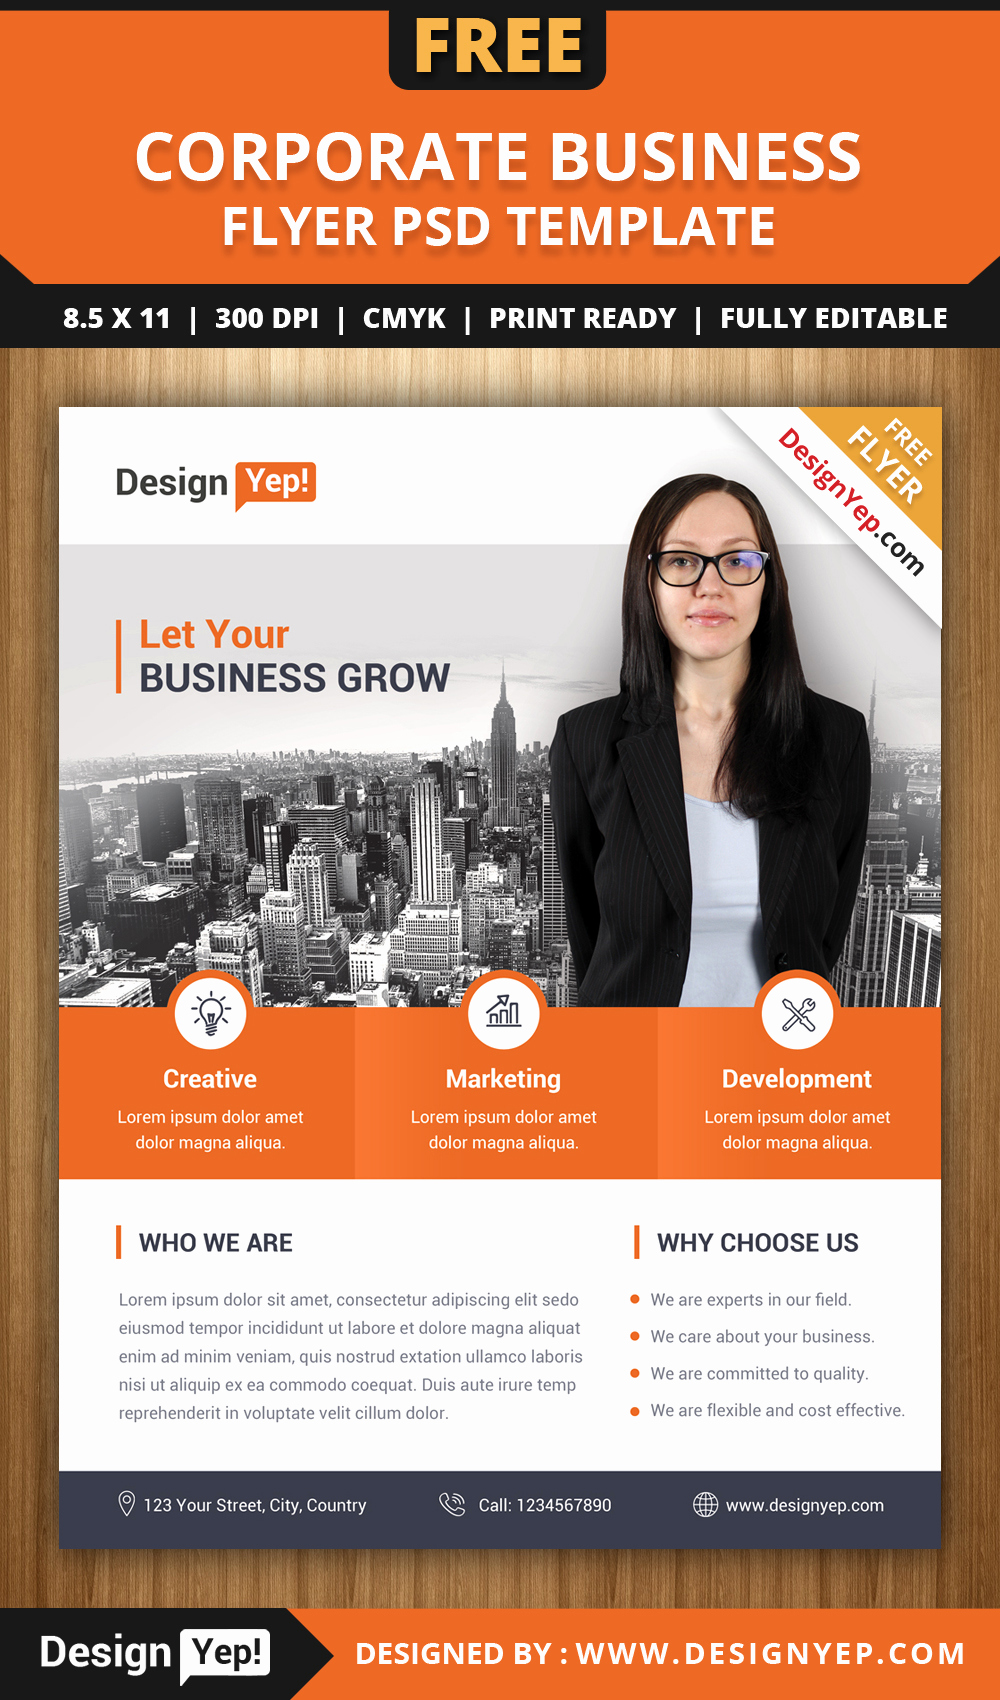 Business Flyers Template Free Beautiful Free Corporate Business Flyer Psd Template Designyep